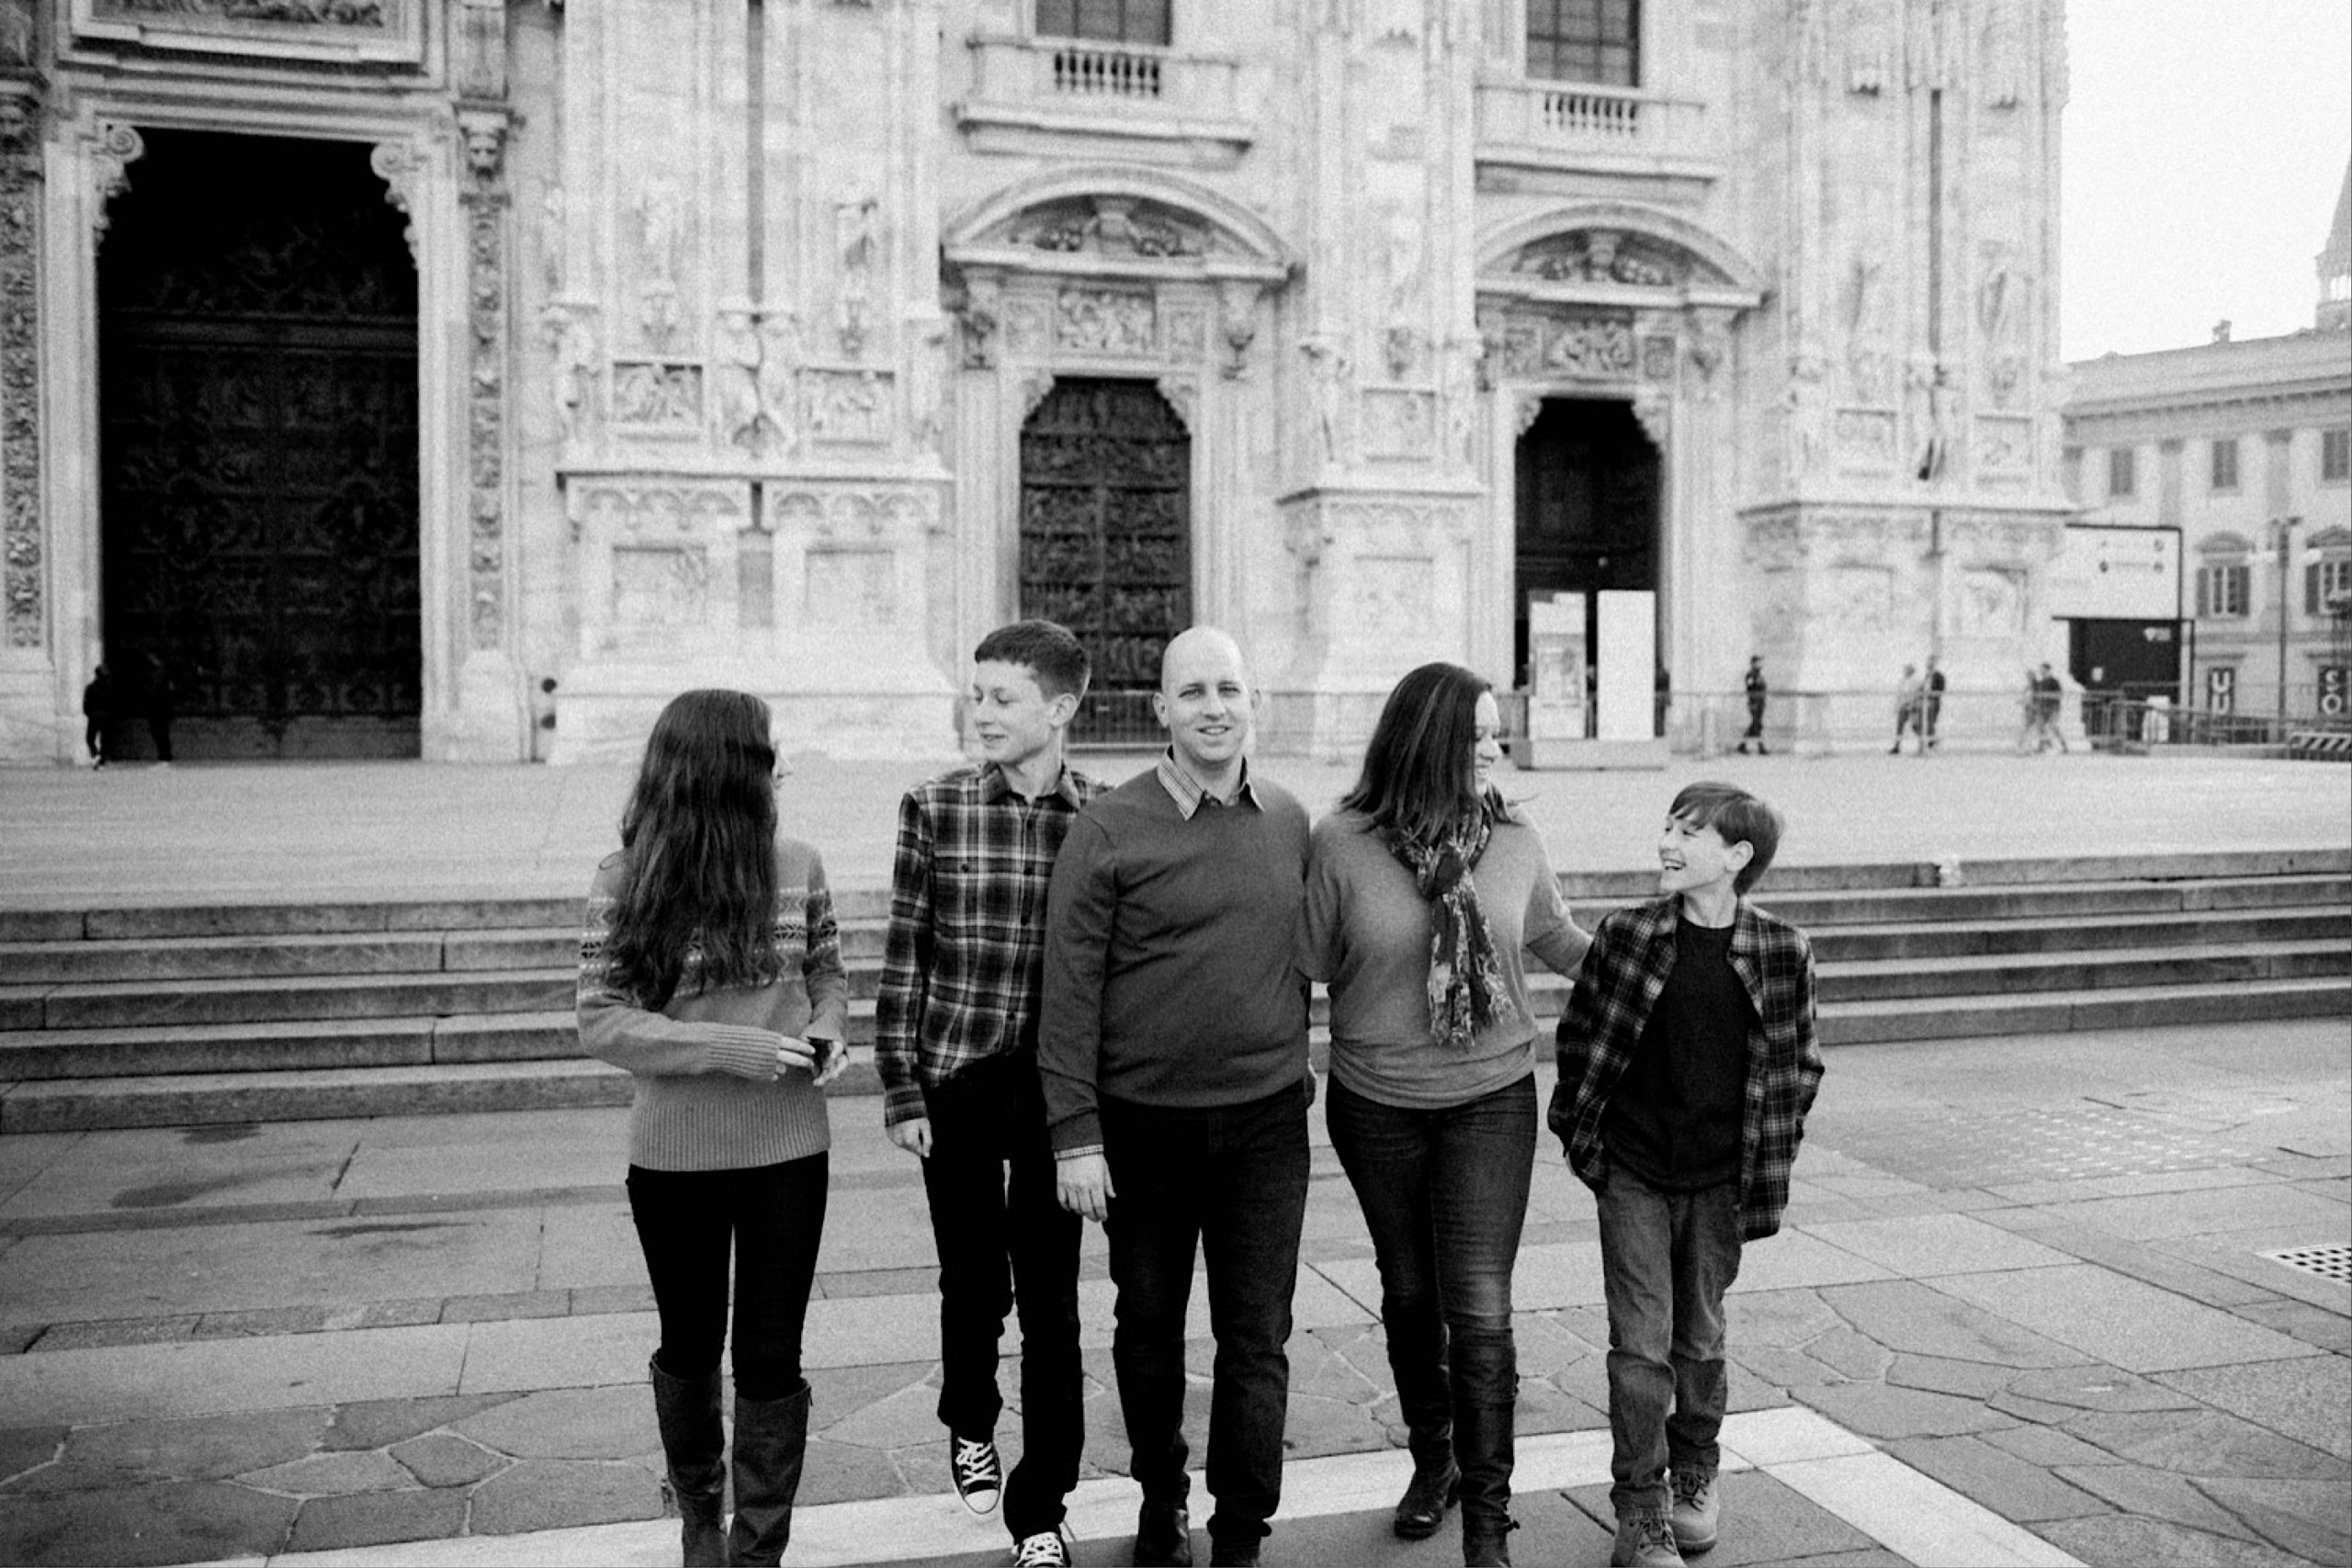 Black & white family photo of a family of five walking in front of the Duomo di Milano.